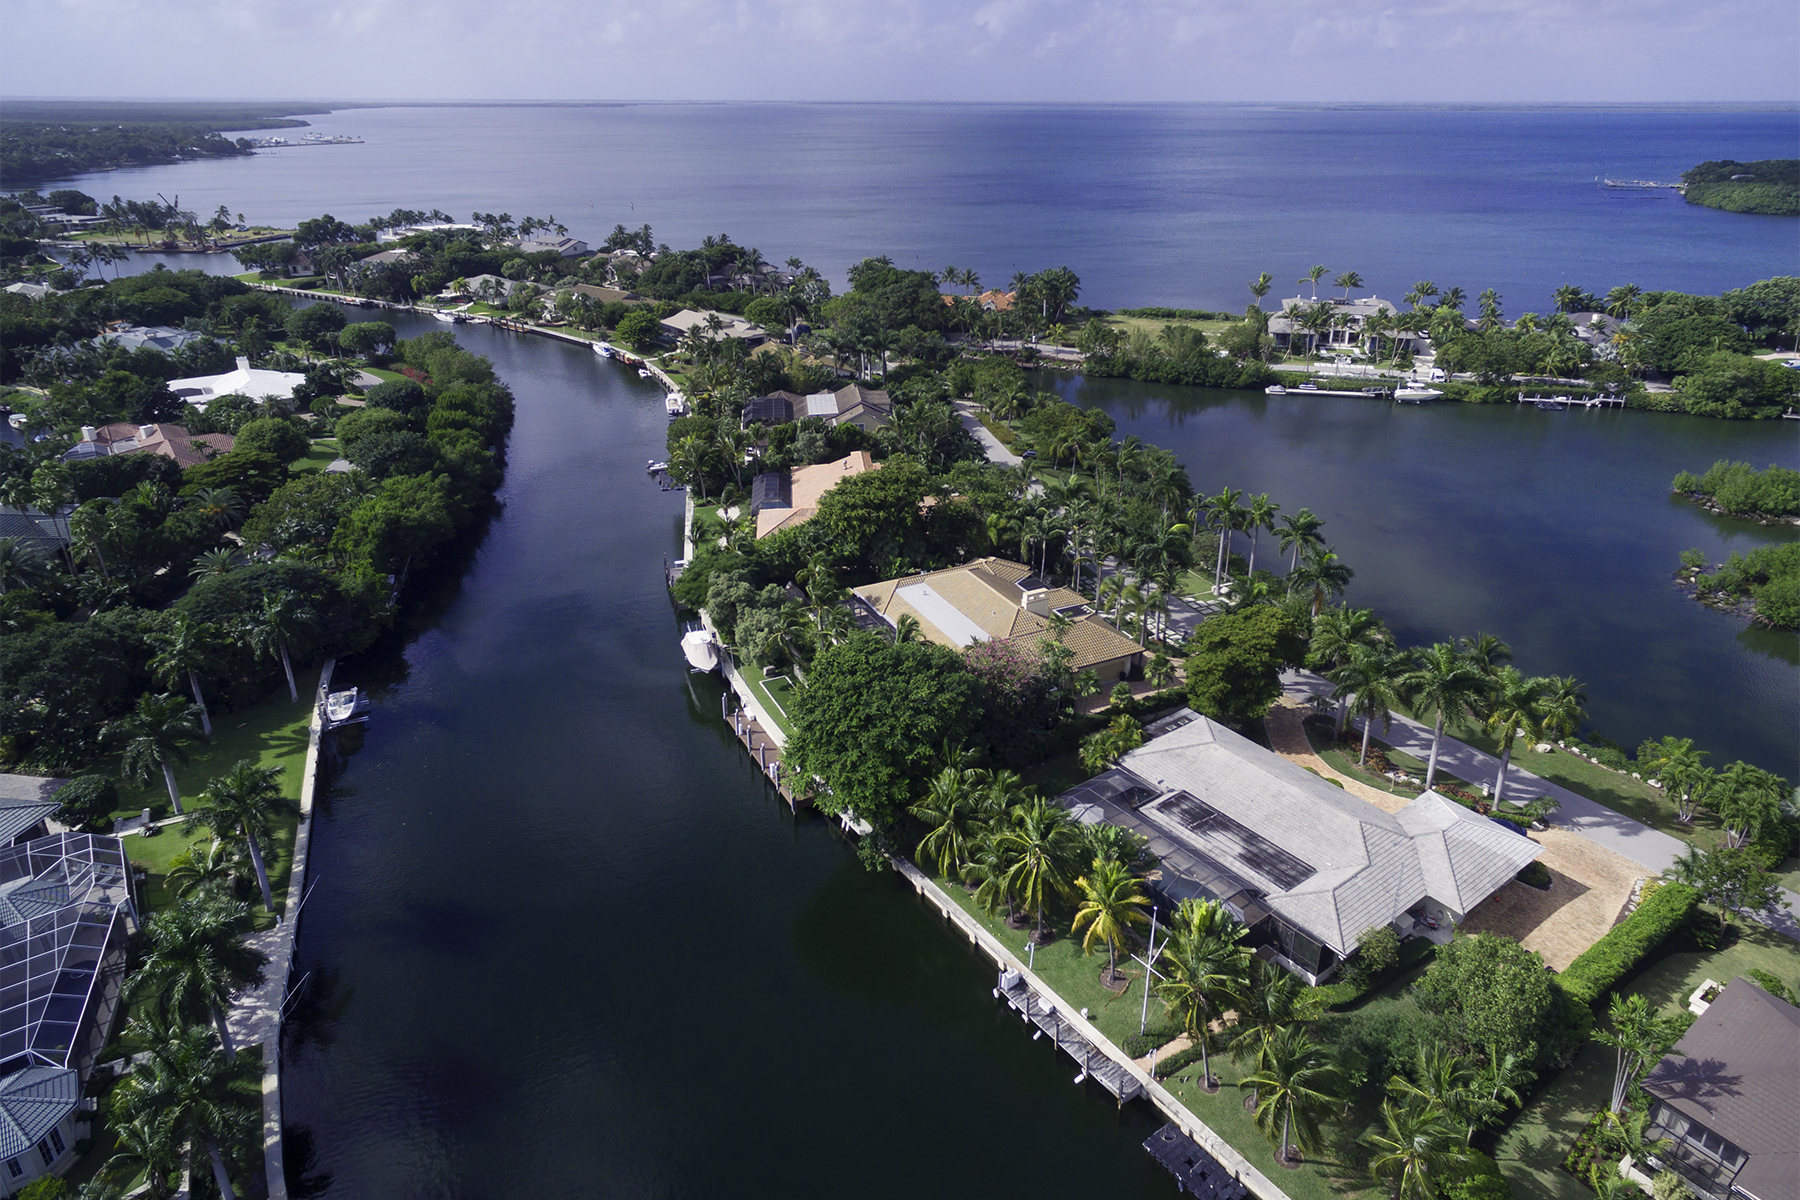 Casa Unifamiliar por un Venta en Fabulous Waterfront Location at Ocean Reef 32 East Snapper Point Drive Ocean Reef Community, Key Largo, Florida, 33037 Estados Unidos